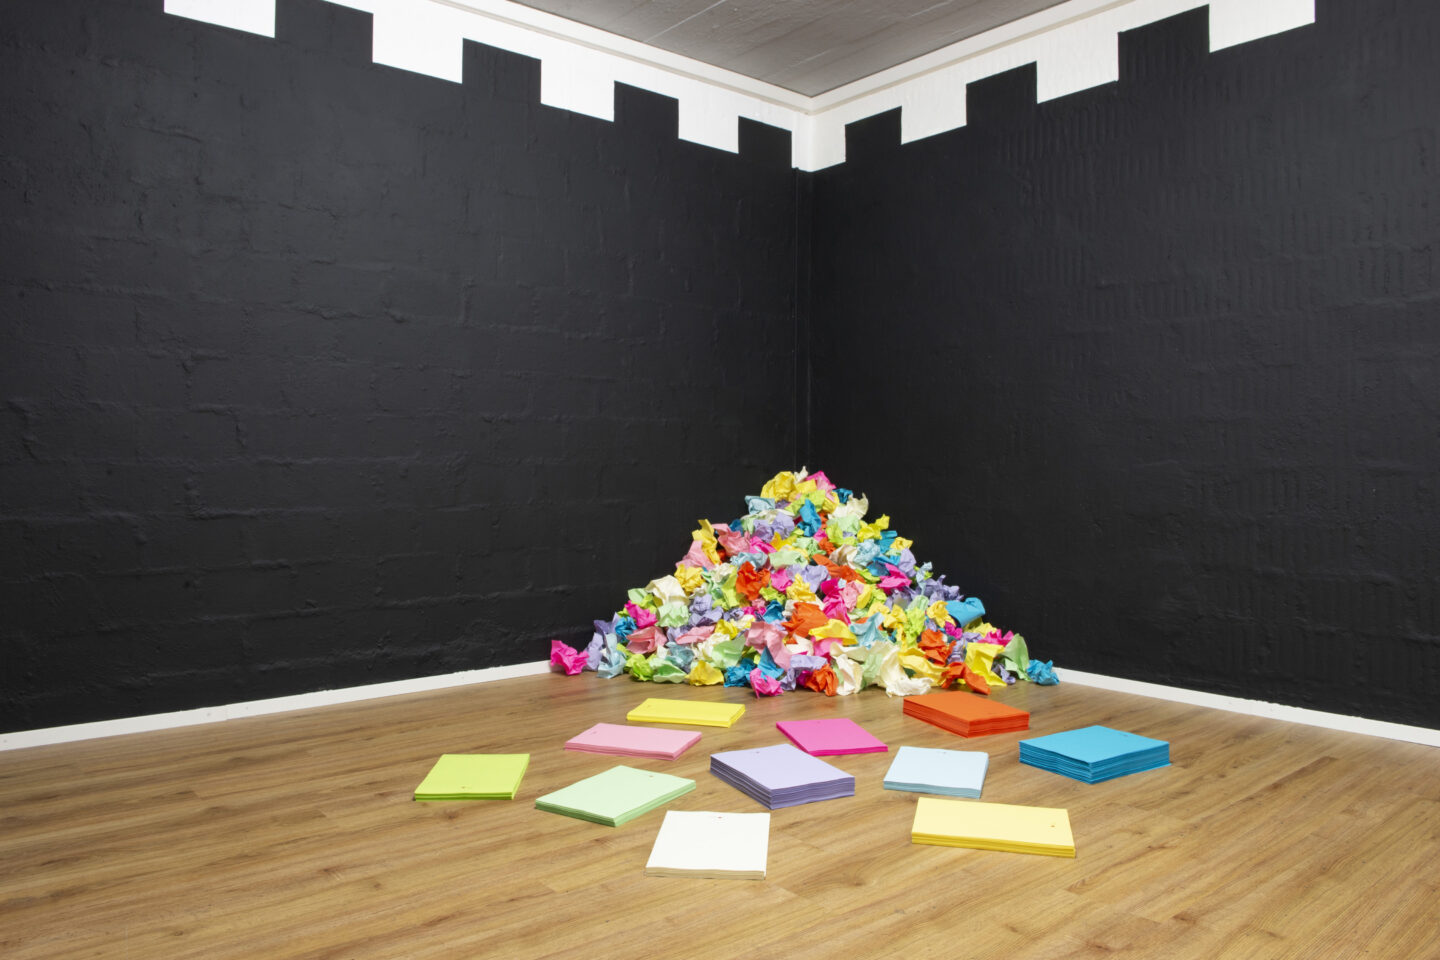 Exhibition View Groupshow «i hate you; view on Swetlana Heger, The Unbroken Circle, 2020, Copy paper, Dimensions variable» at Plymouth Rock, Zurich, 2020 / Courtesy: the artist and Plymouth Rock